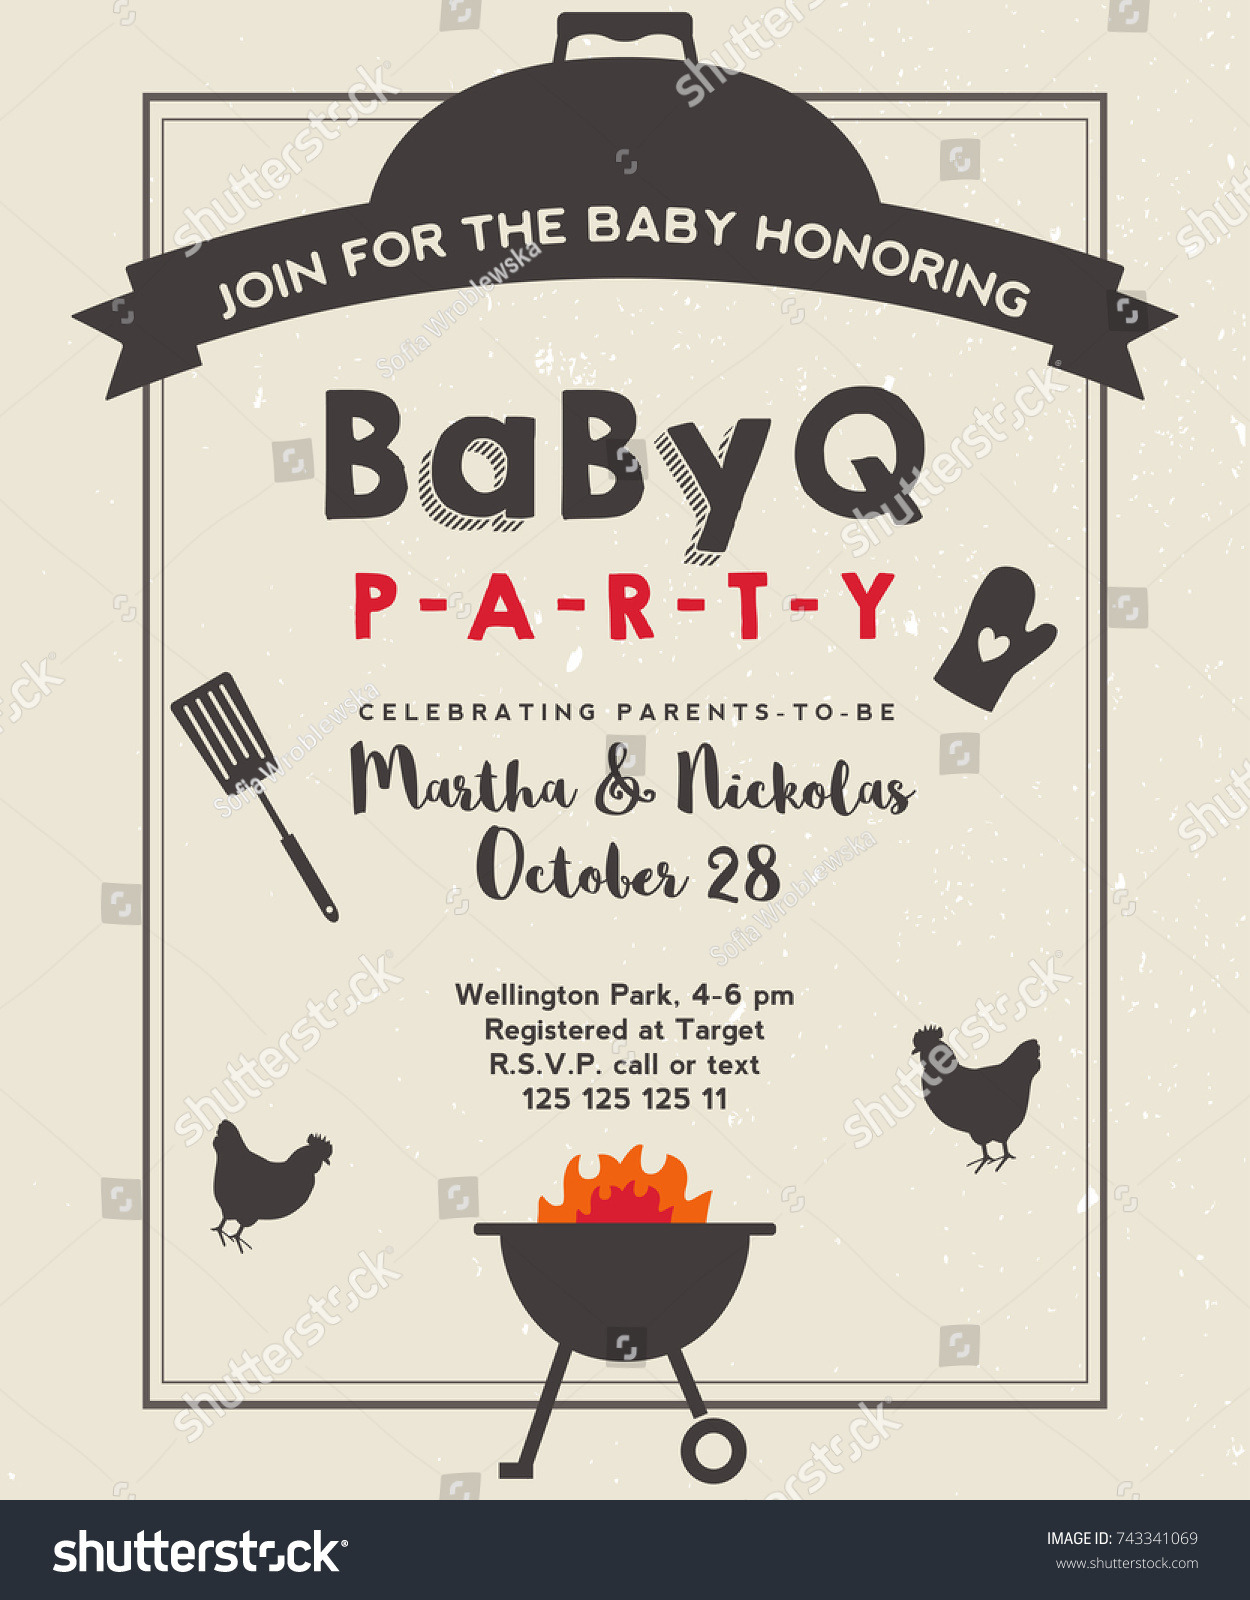 stock vector baby shower barbeque party with vintage background bbq invite template grunge paper